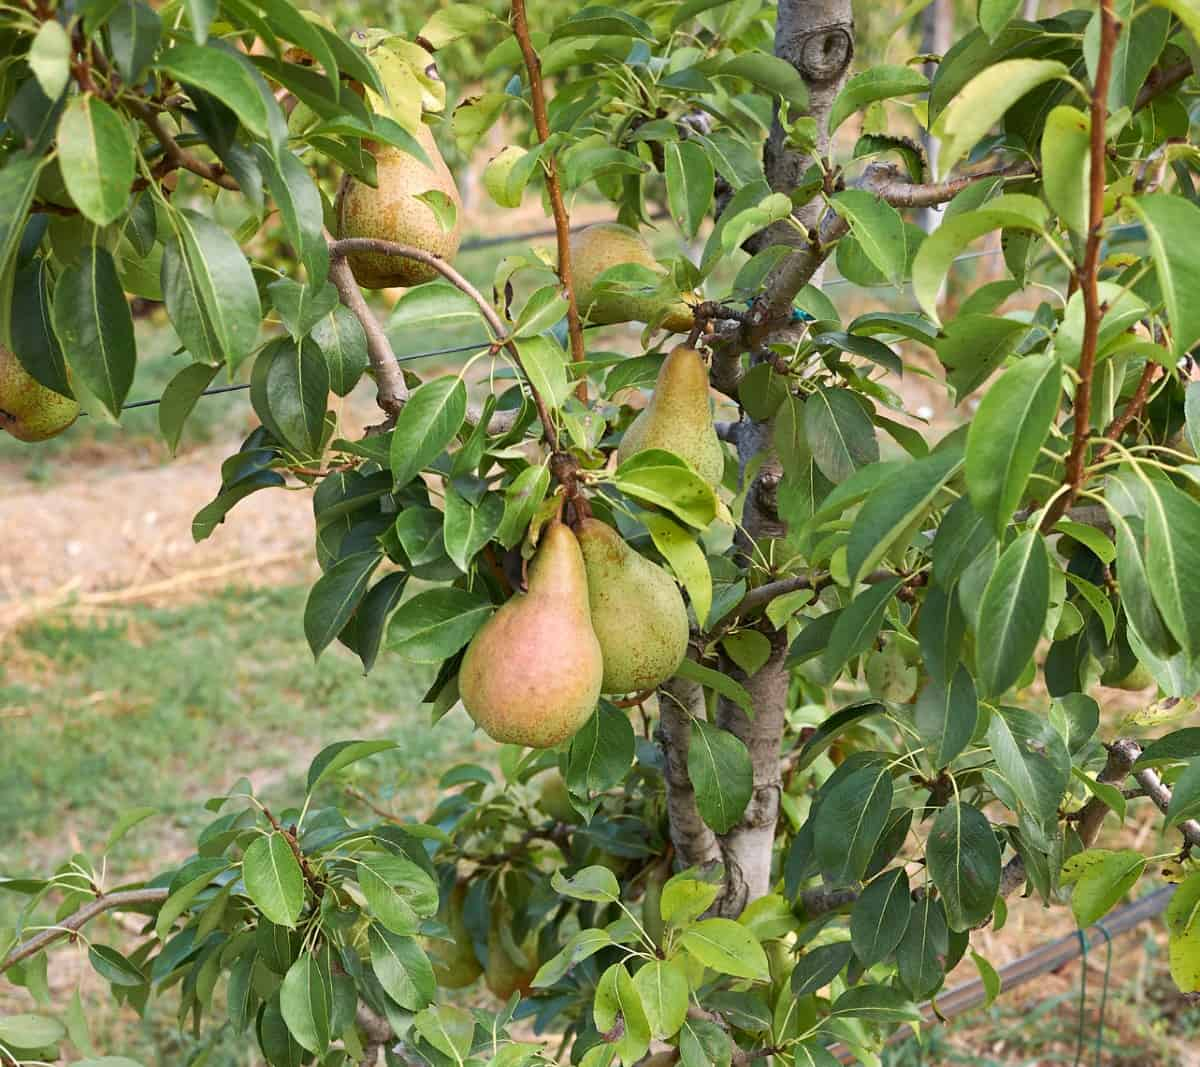 It takes 3-10 years for a common pear tree to produce fruit.